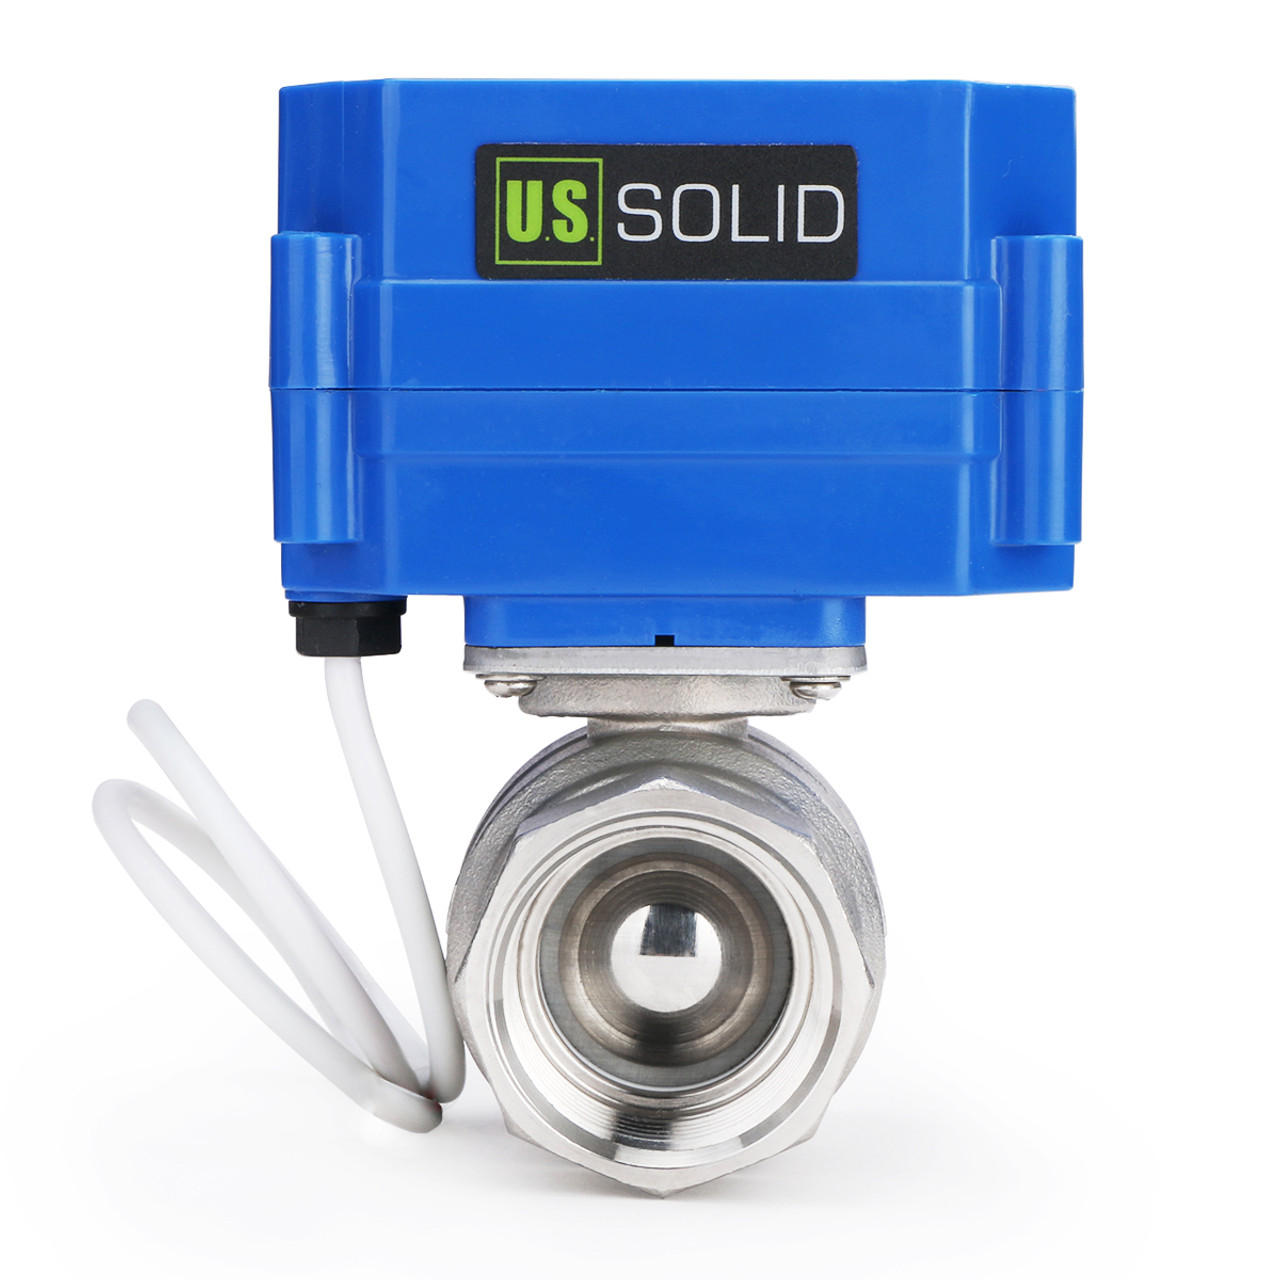 "U.S. Solid Motorized Ball Valve- 1"" Stainless Steel Electrical Ball Valve with Full Port, 9-24 V DC, 5 Wire Setup"